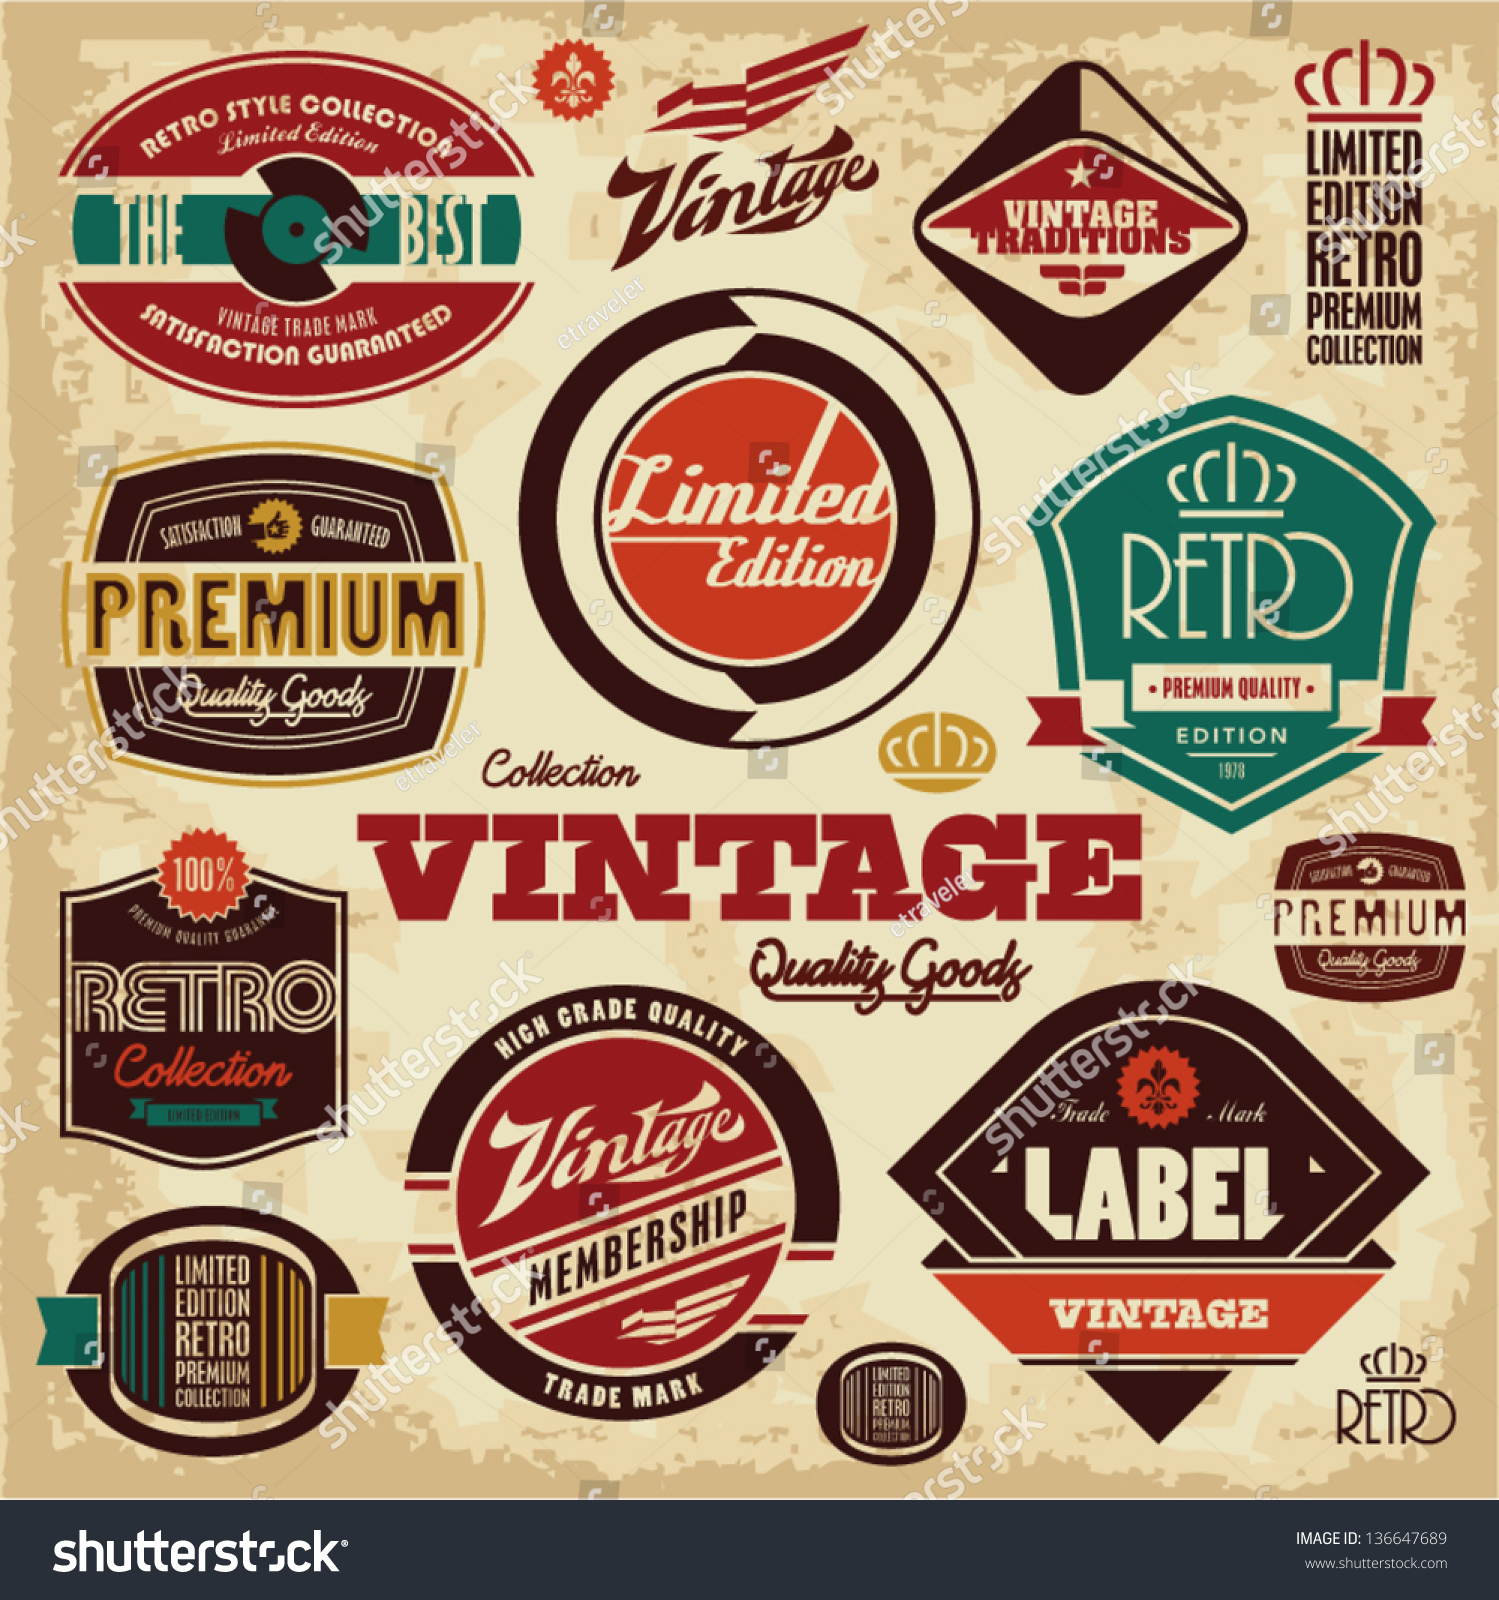 Vintage labels collection retro design elements stock for Imagenes retro vintage